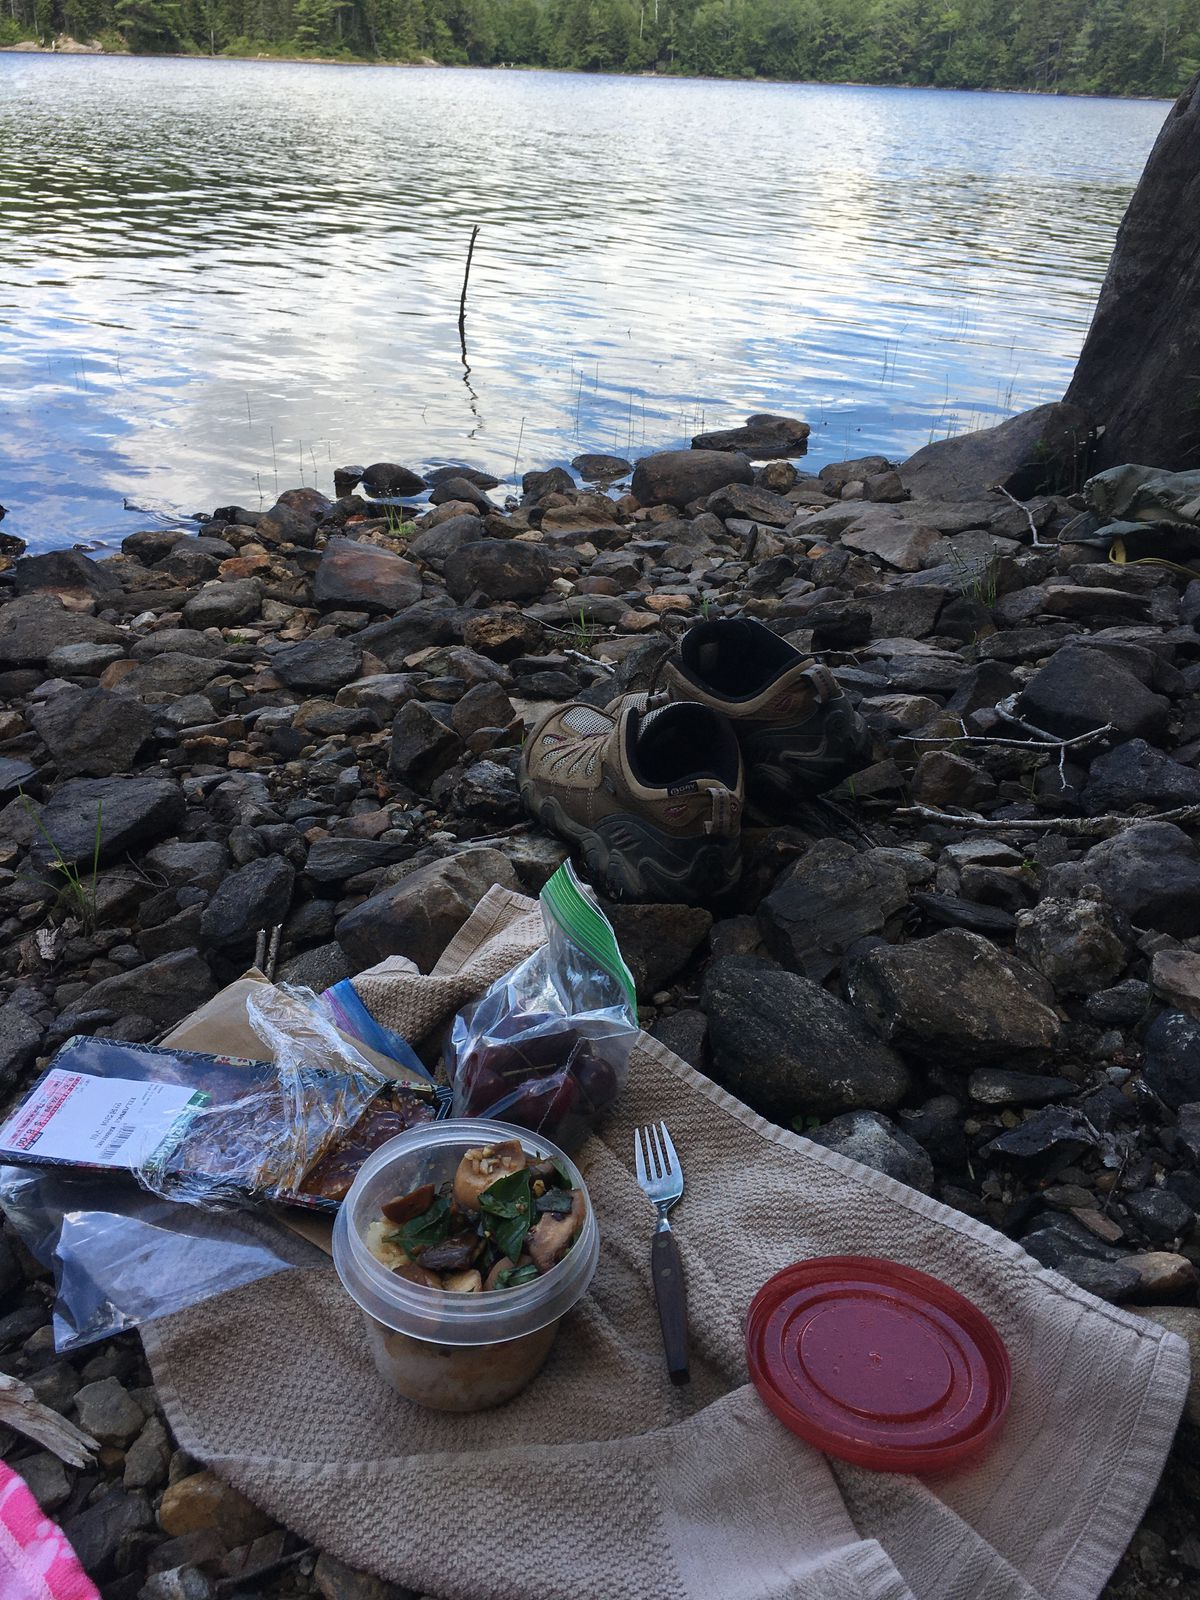 A picnic lunch on the shore of a lake, accompanied by a pair of hiking boots.